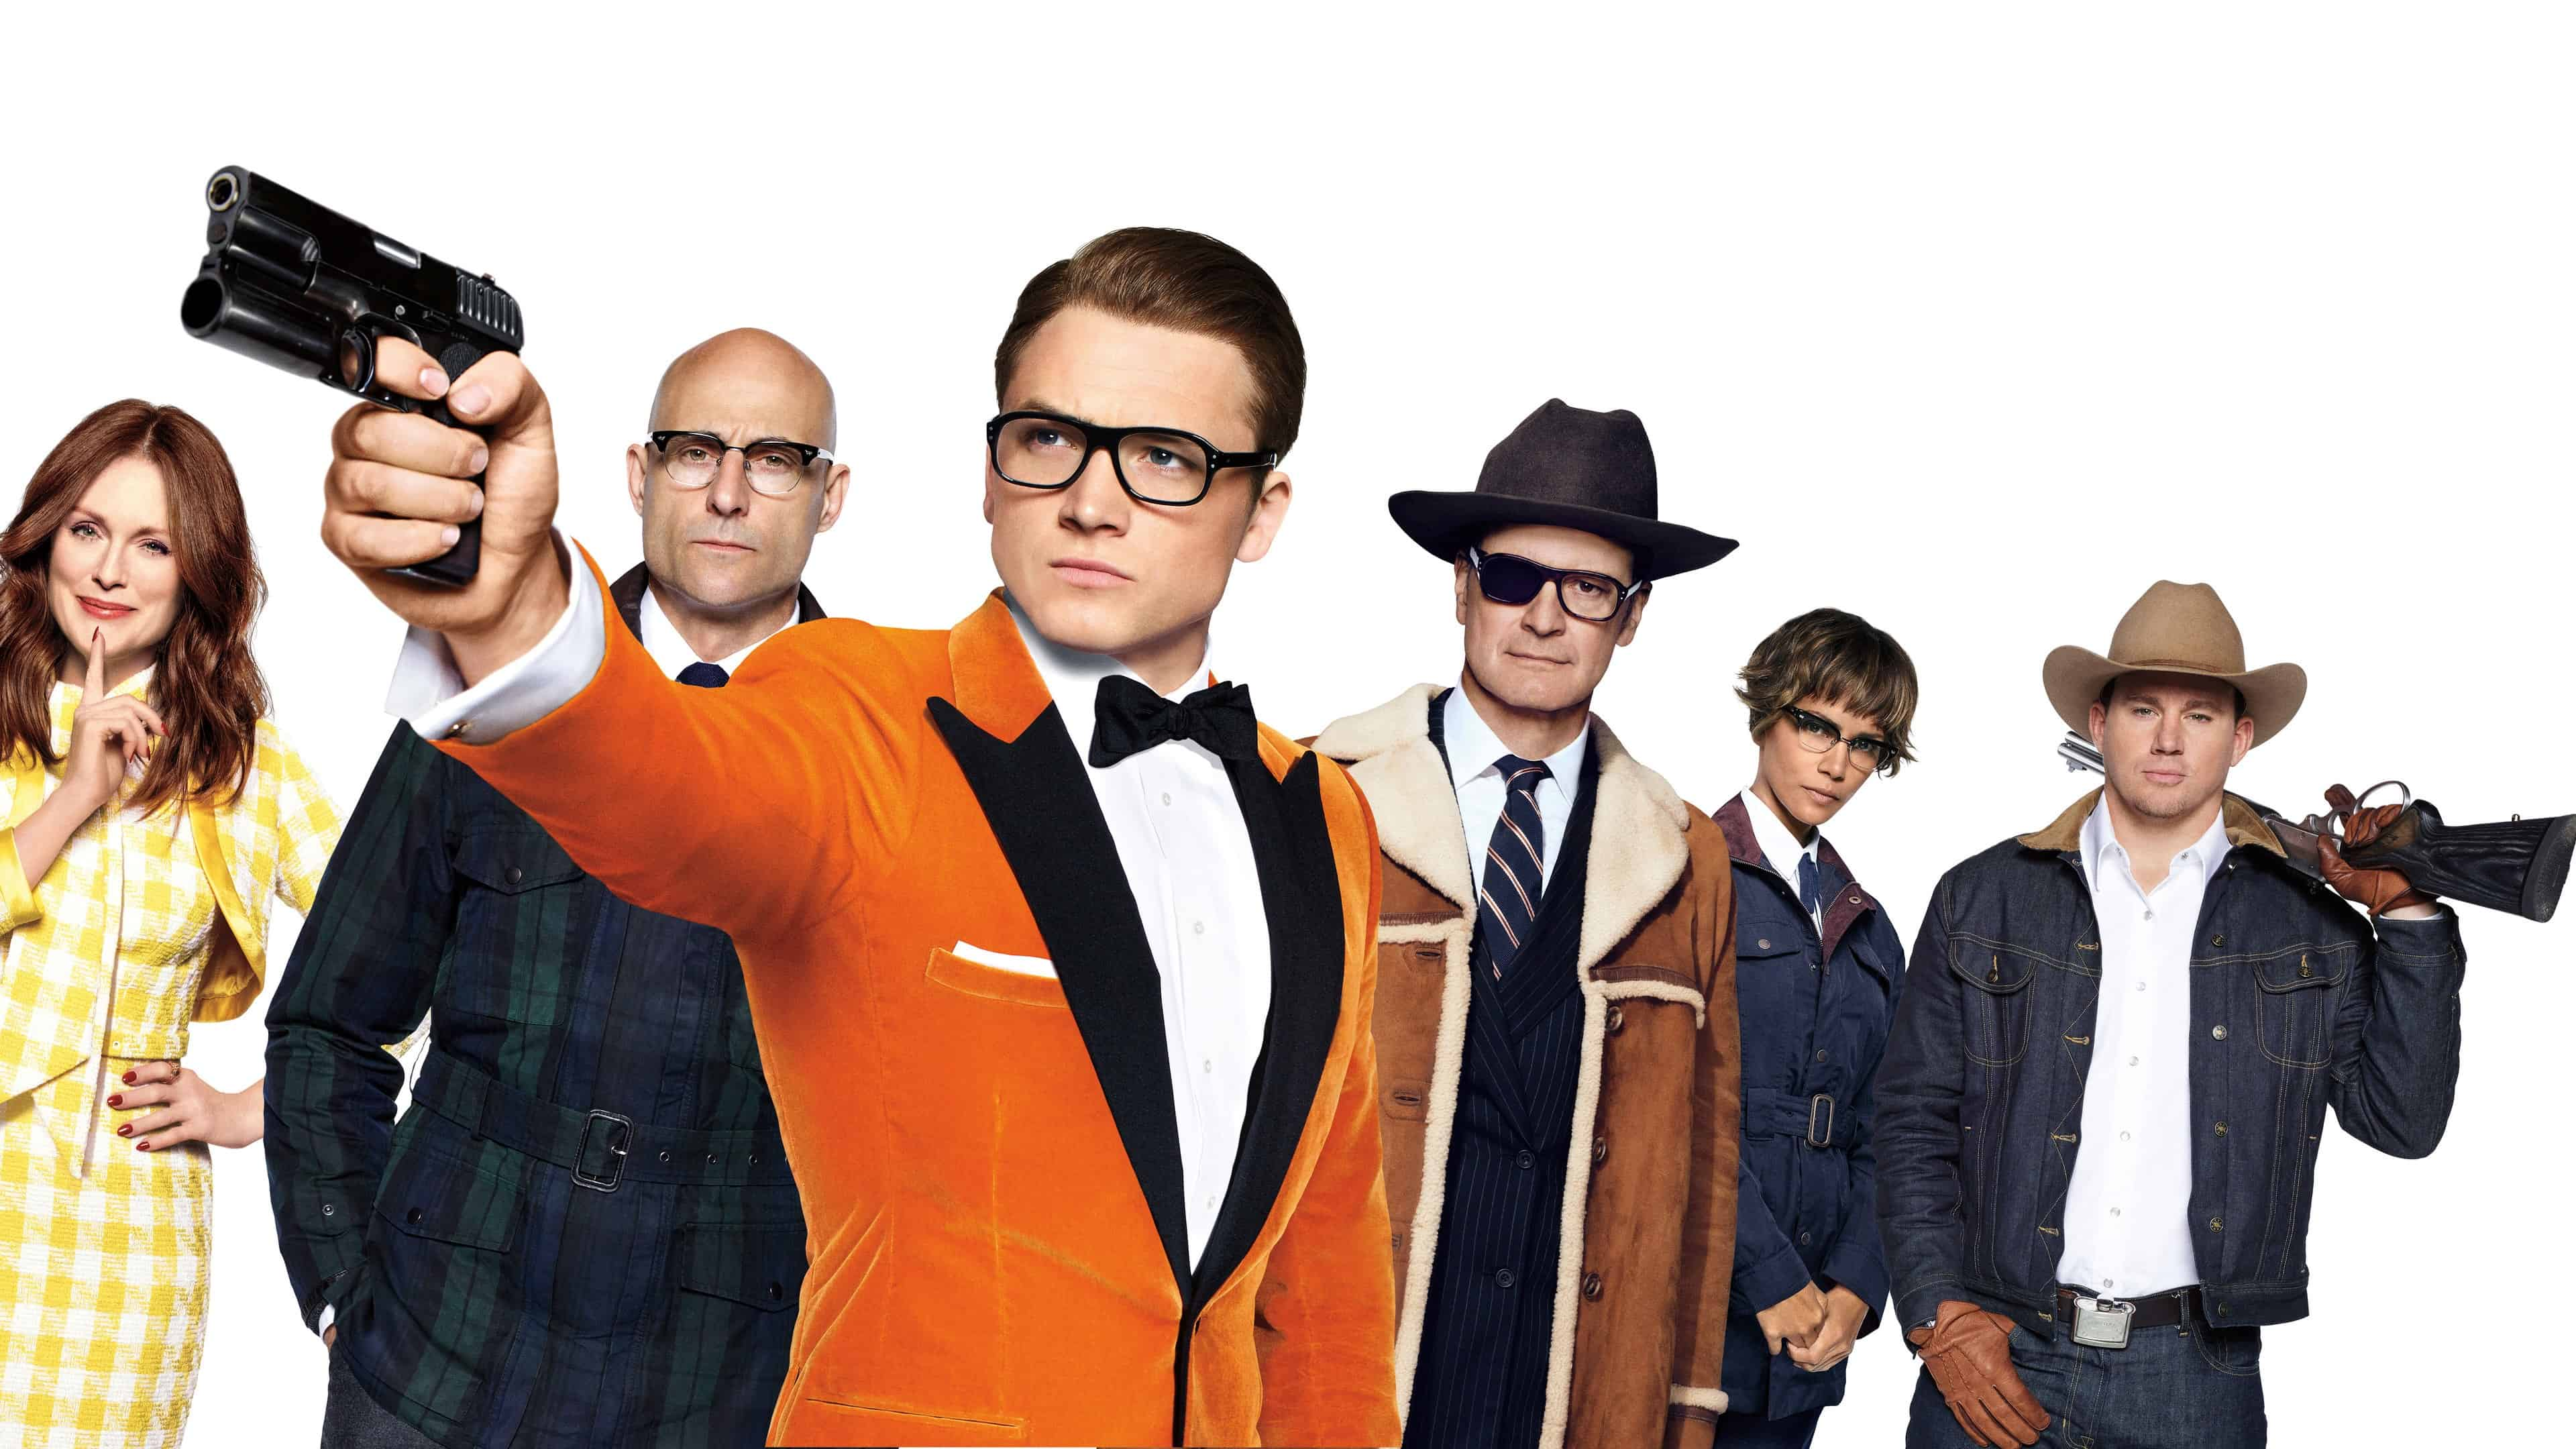 Kingsman The Golden Circle Wallpaper: Kingsman The Golden Circle UHD 4K Wallpaper